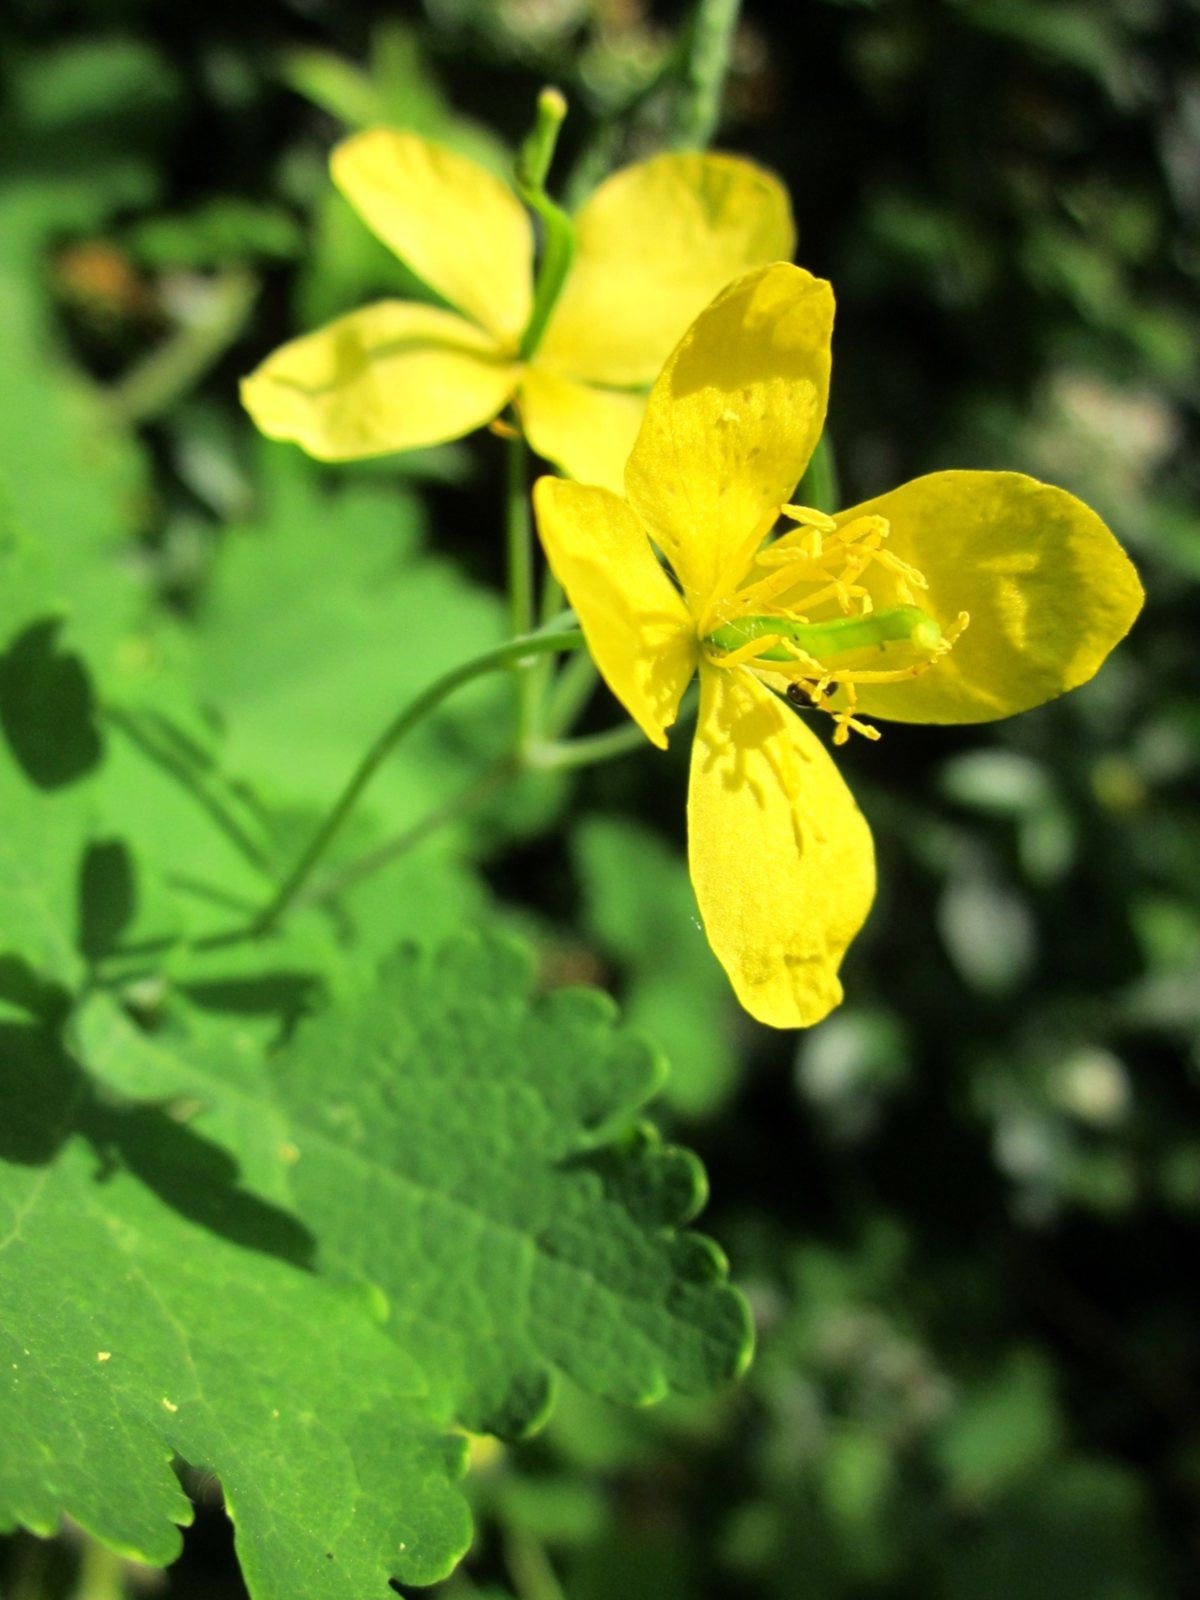 Greater celandine flower and leaf